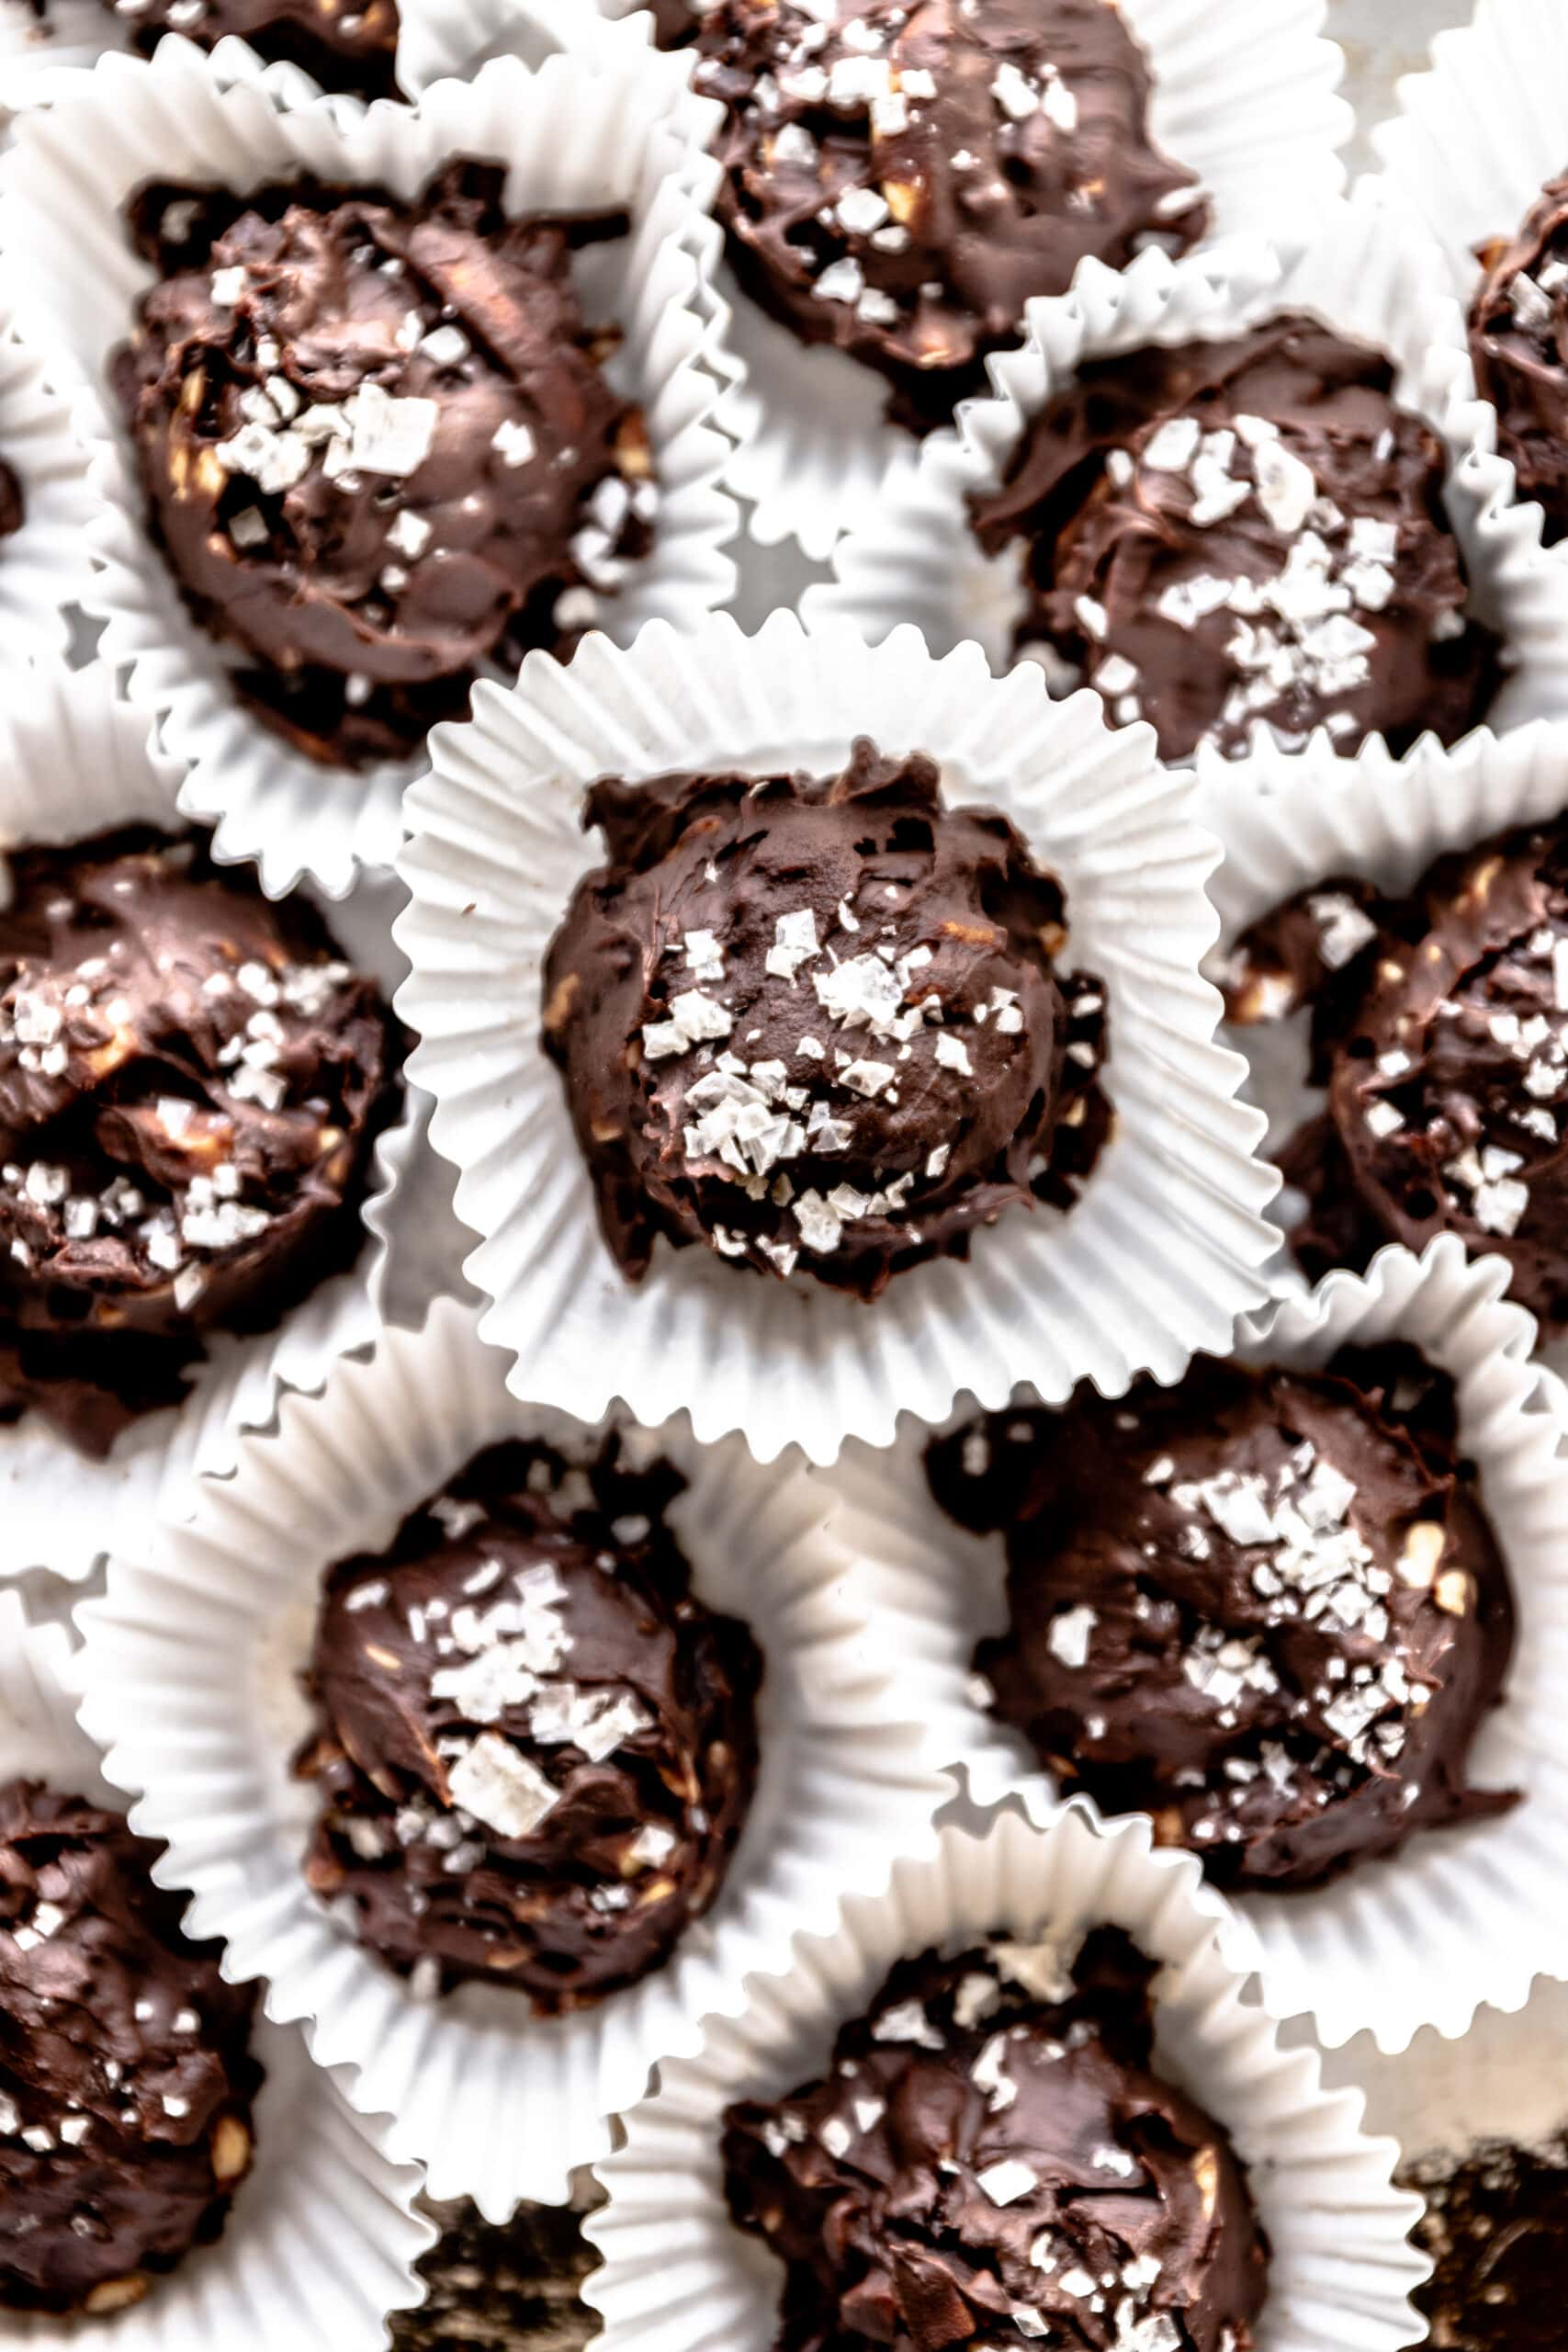 Chocolate cherry truffles with almonds and topped with sea salt in individual muffin liners.